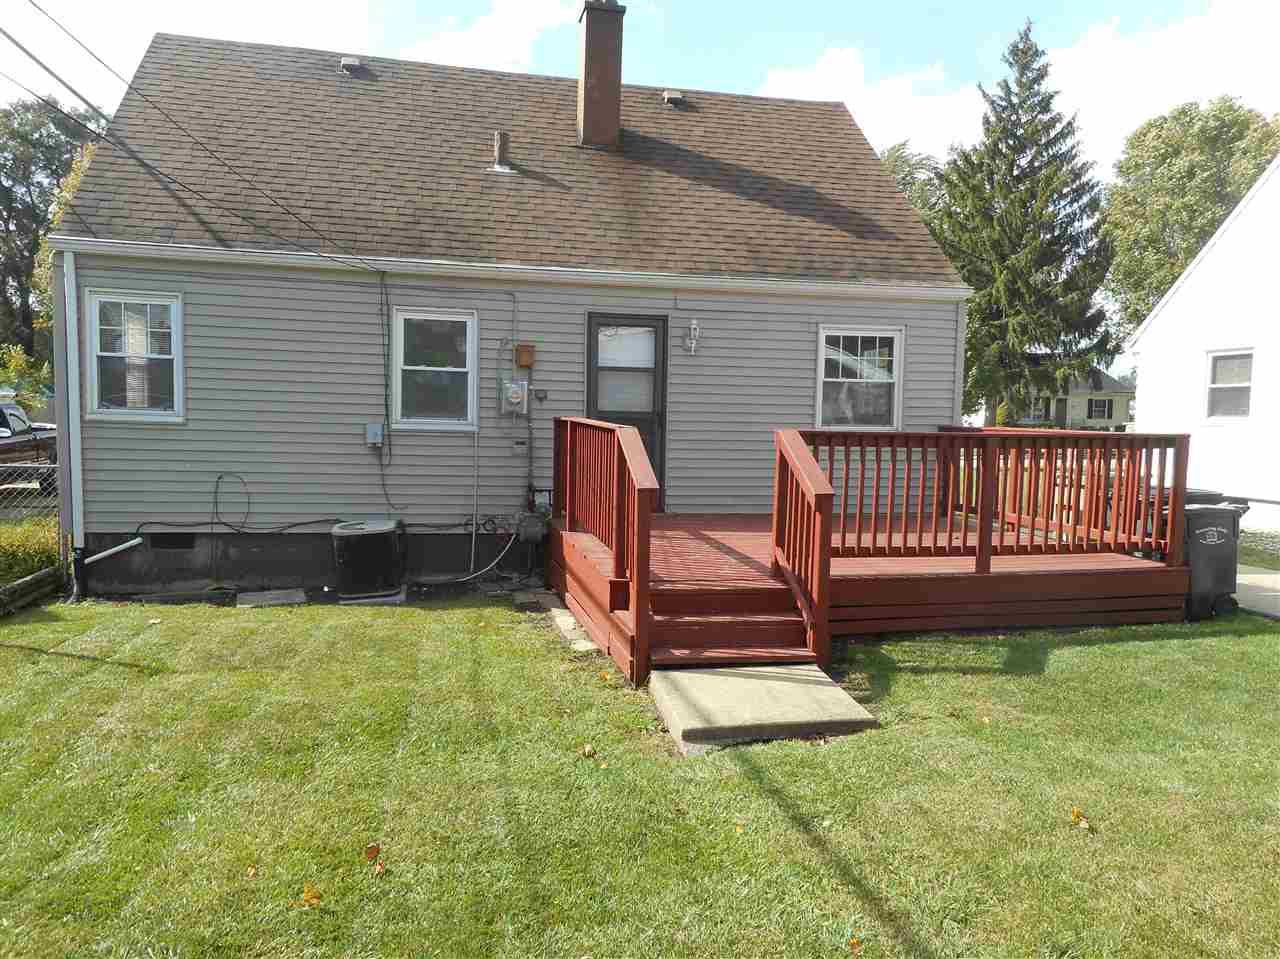 912 fairway street south bend in 46619 sold listing for Fairway house cleaning